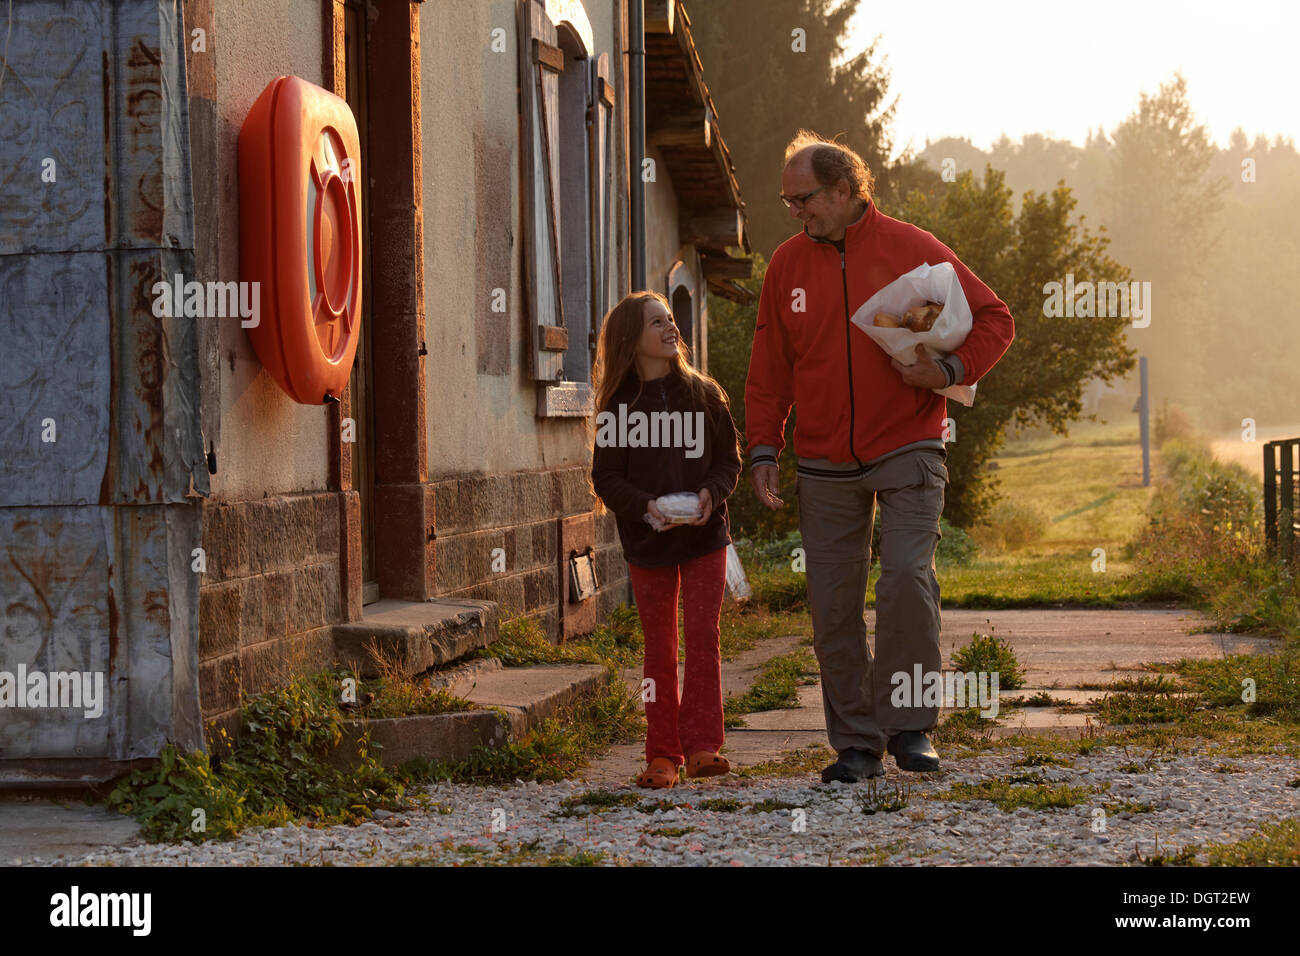 Father and daughter shopping for bread in the early morning, Selles, Vesoul, Region Franche-Comté, Dep. Haute-Saône, France - Stock Image